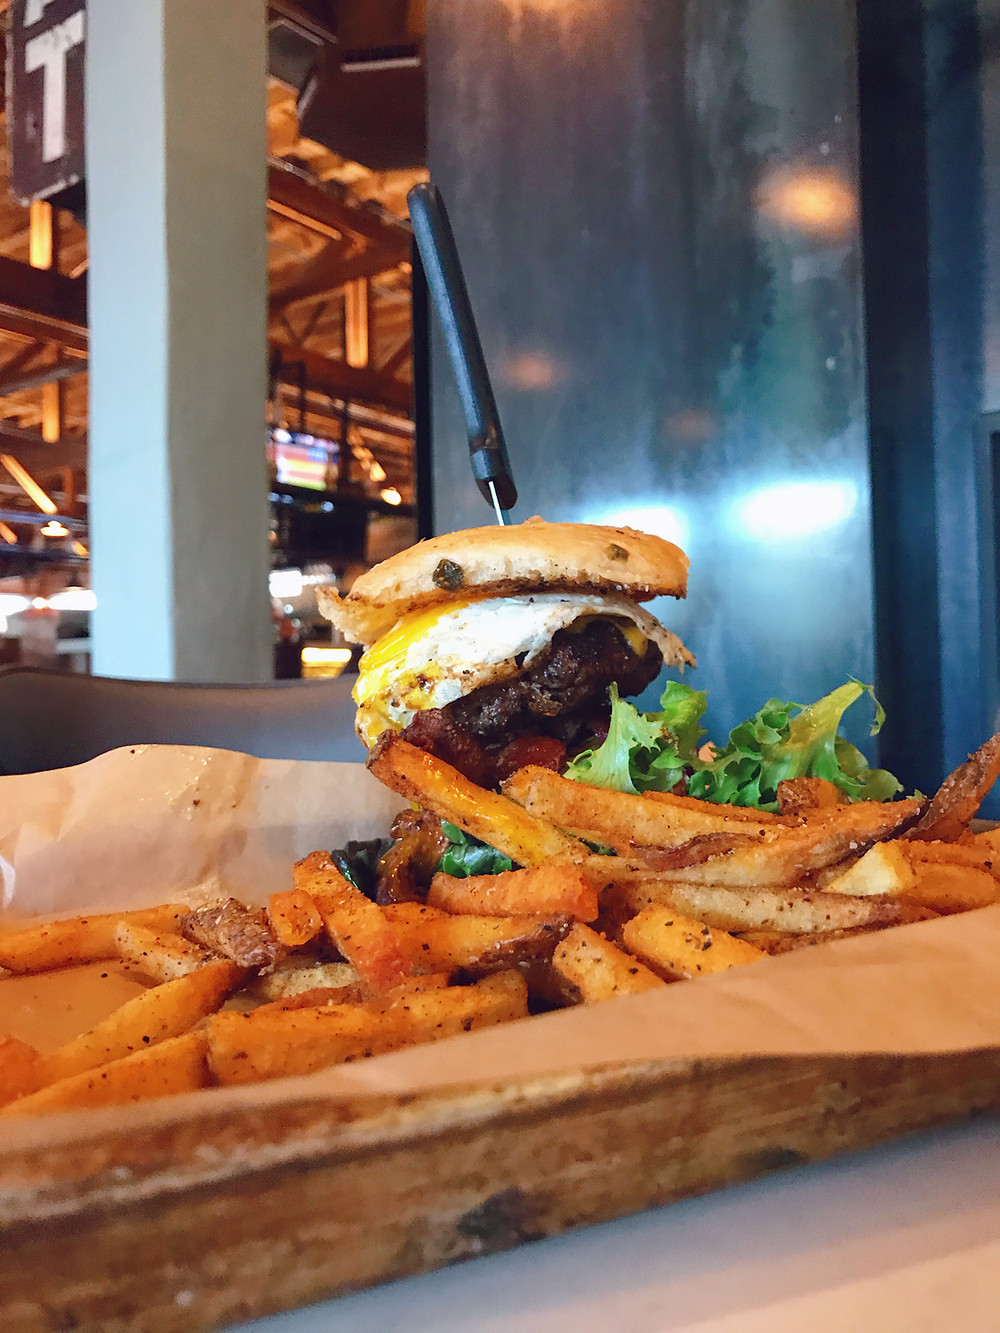 The Downtown Socials Kitchen Sink meal, the photo shows the burger with a knife sticking out of the top of it, surrounded by French fries